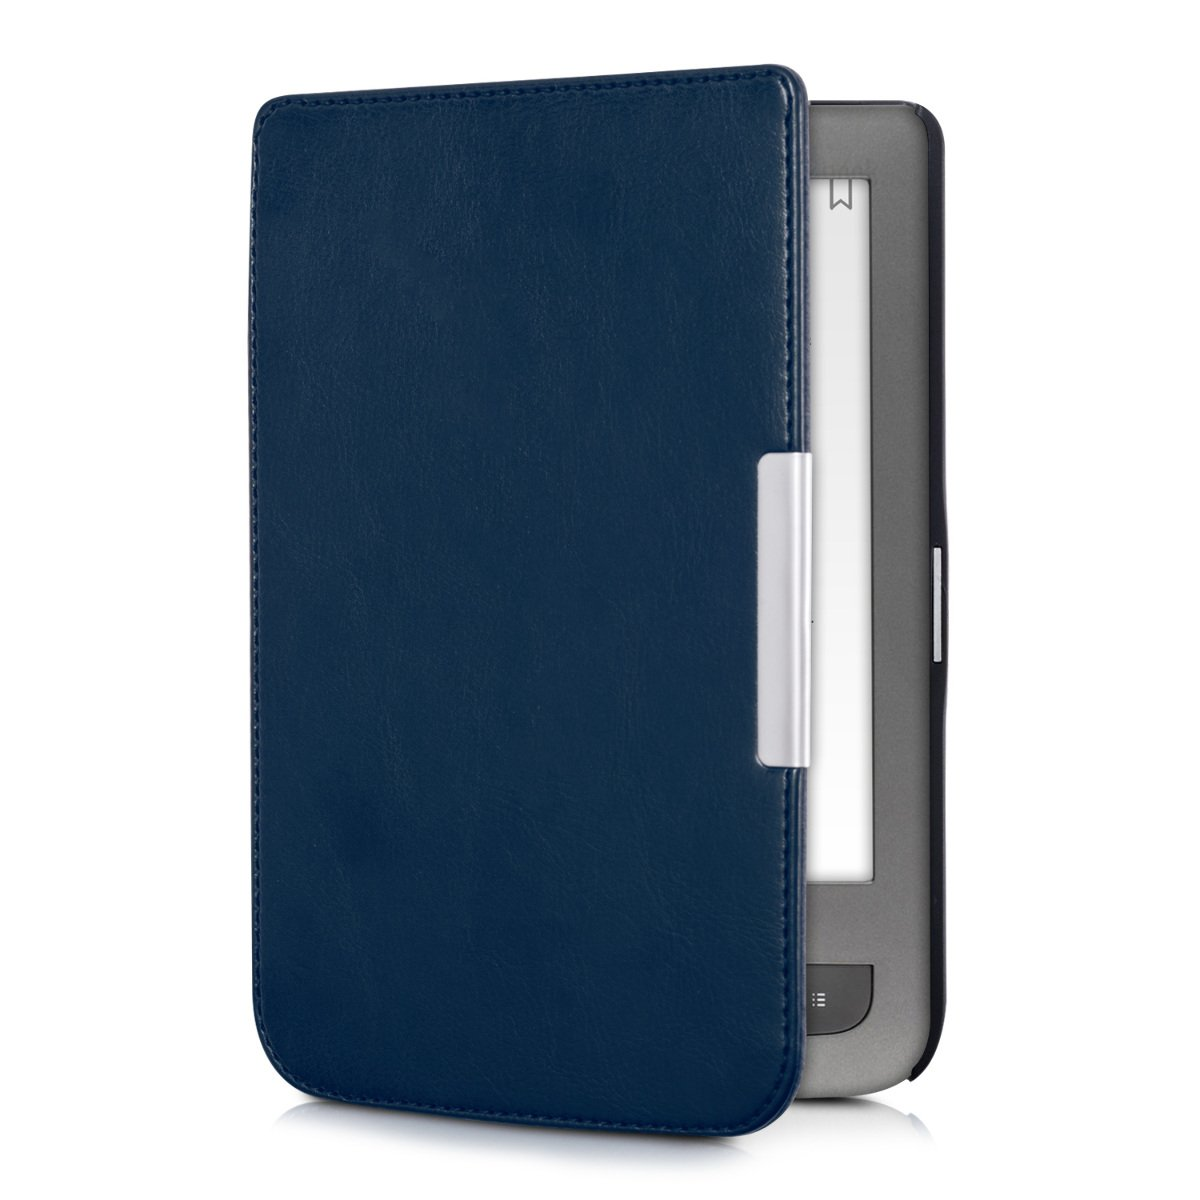 kwmobile Case for Pocketbook Touch Lux 3/Basic Lux/Basic Touch 2 - Book Style PU Leather Protective e-Reader Cover Folio Case - Dark Blue